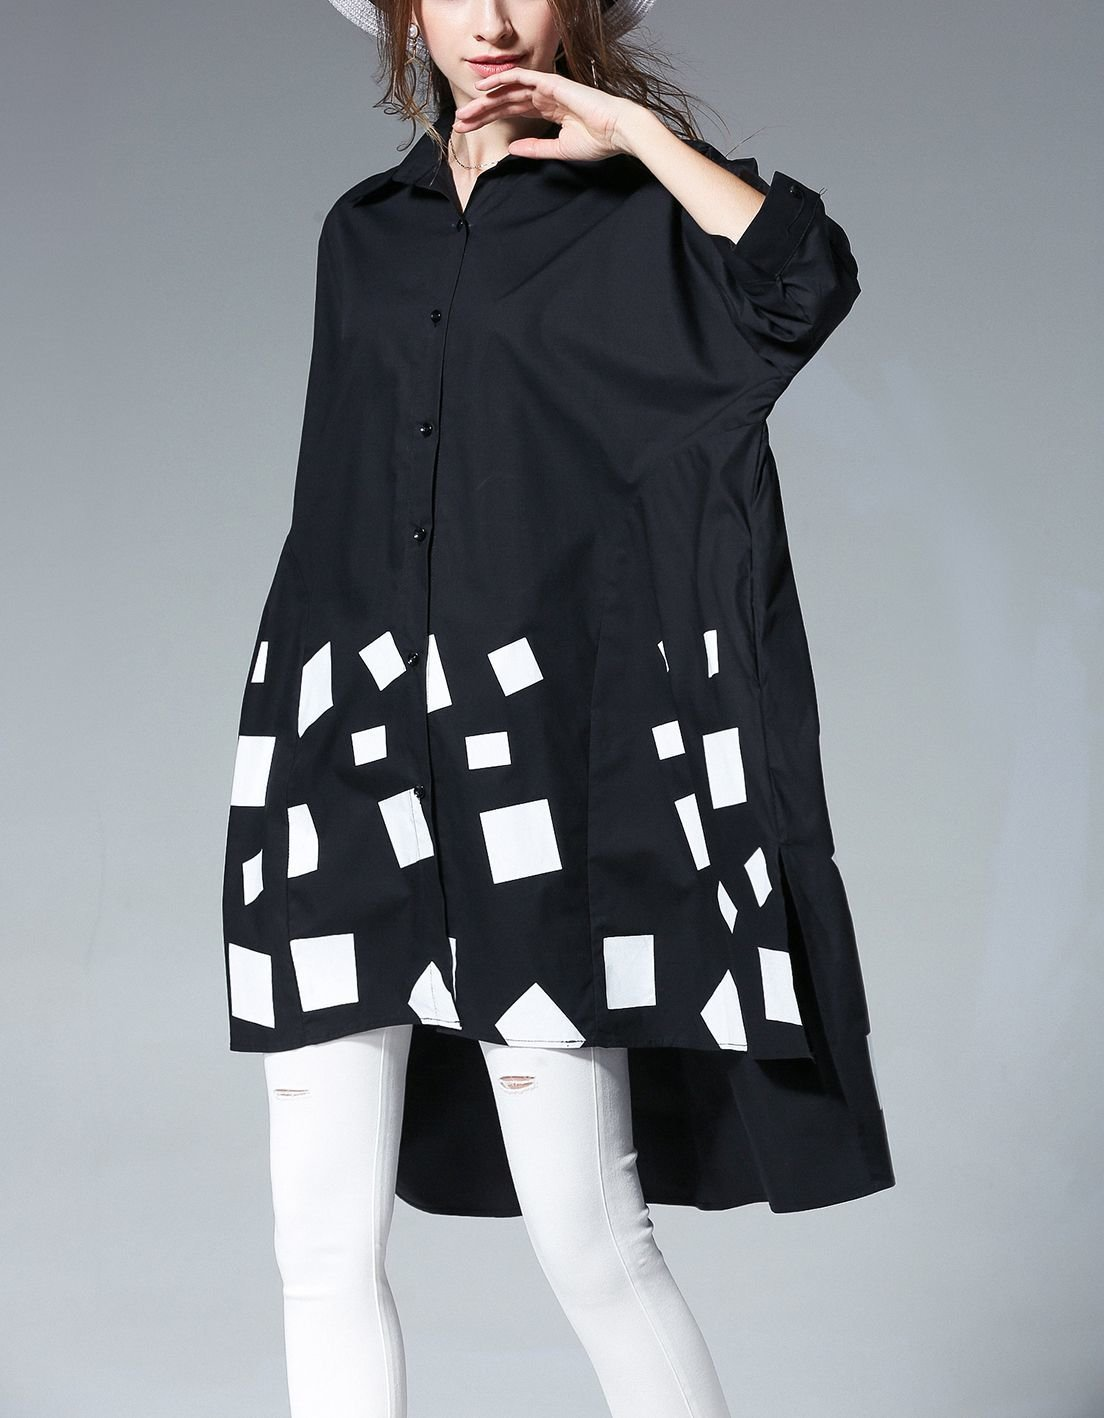 Cotton Smock Top with Loose Fit and Pop Art Print